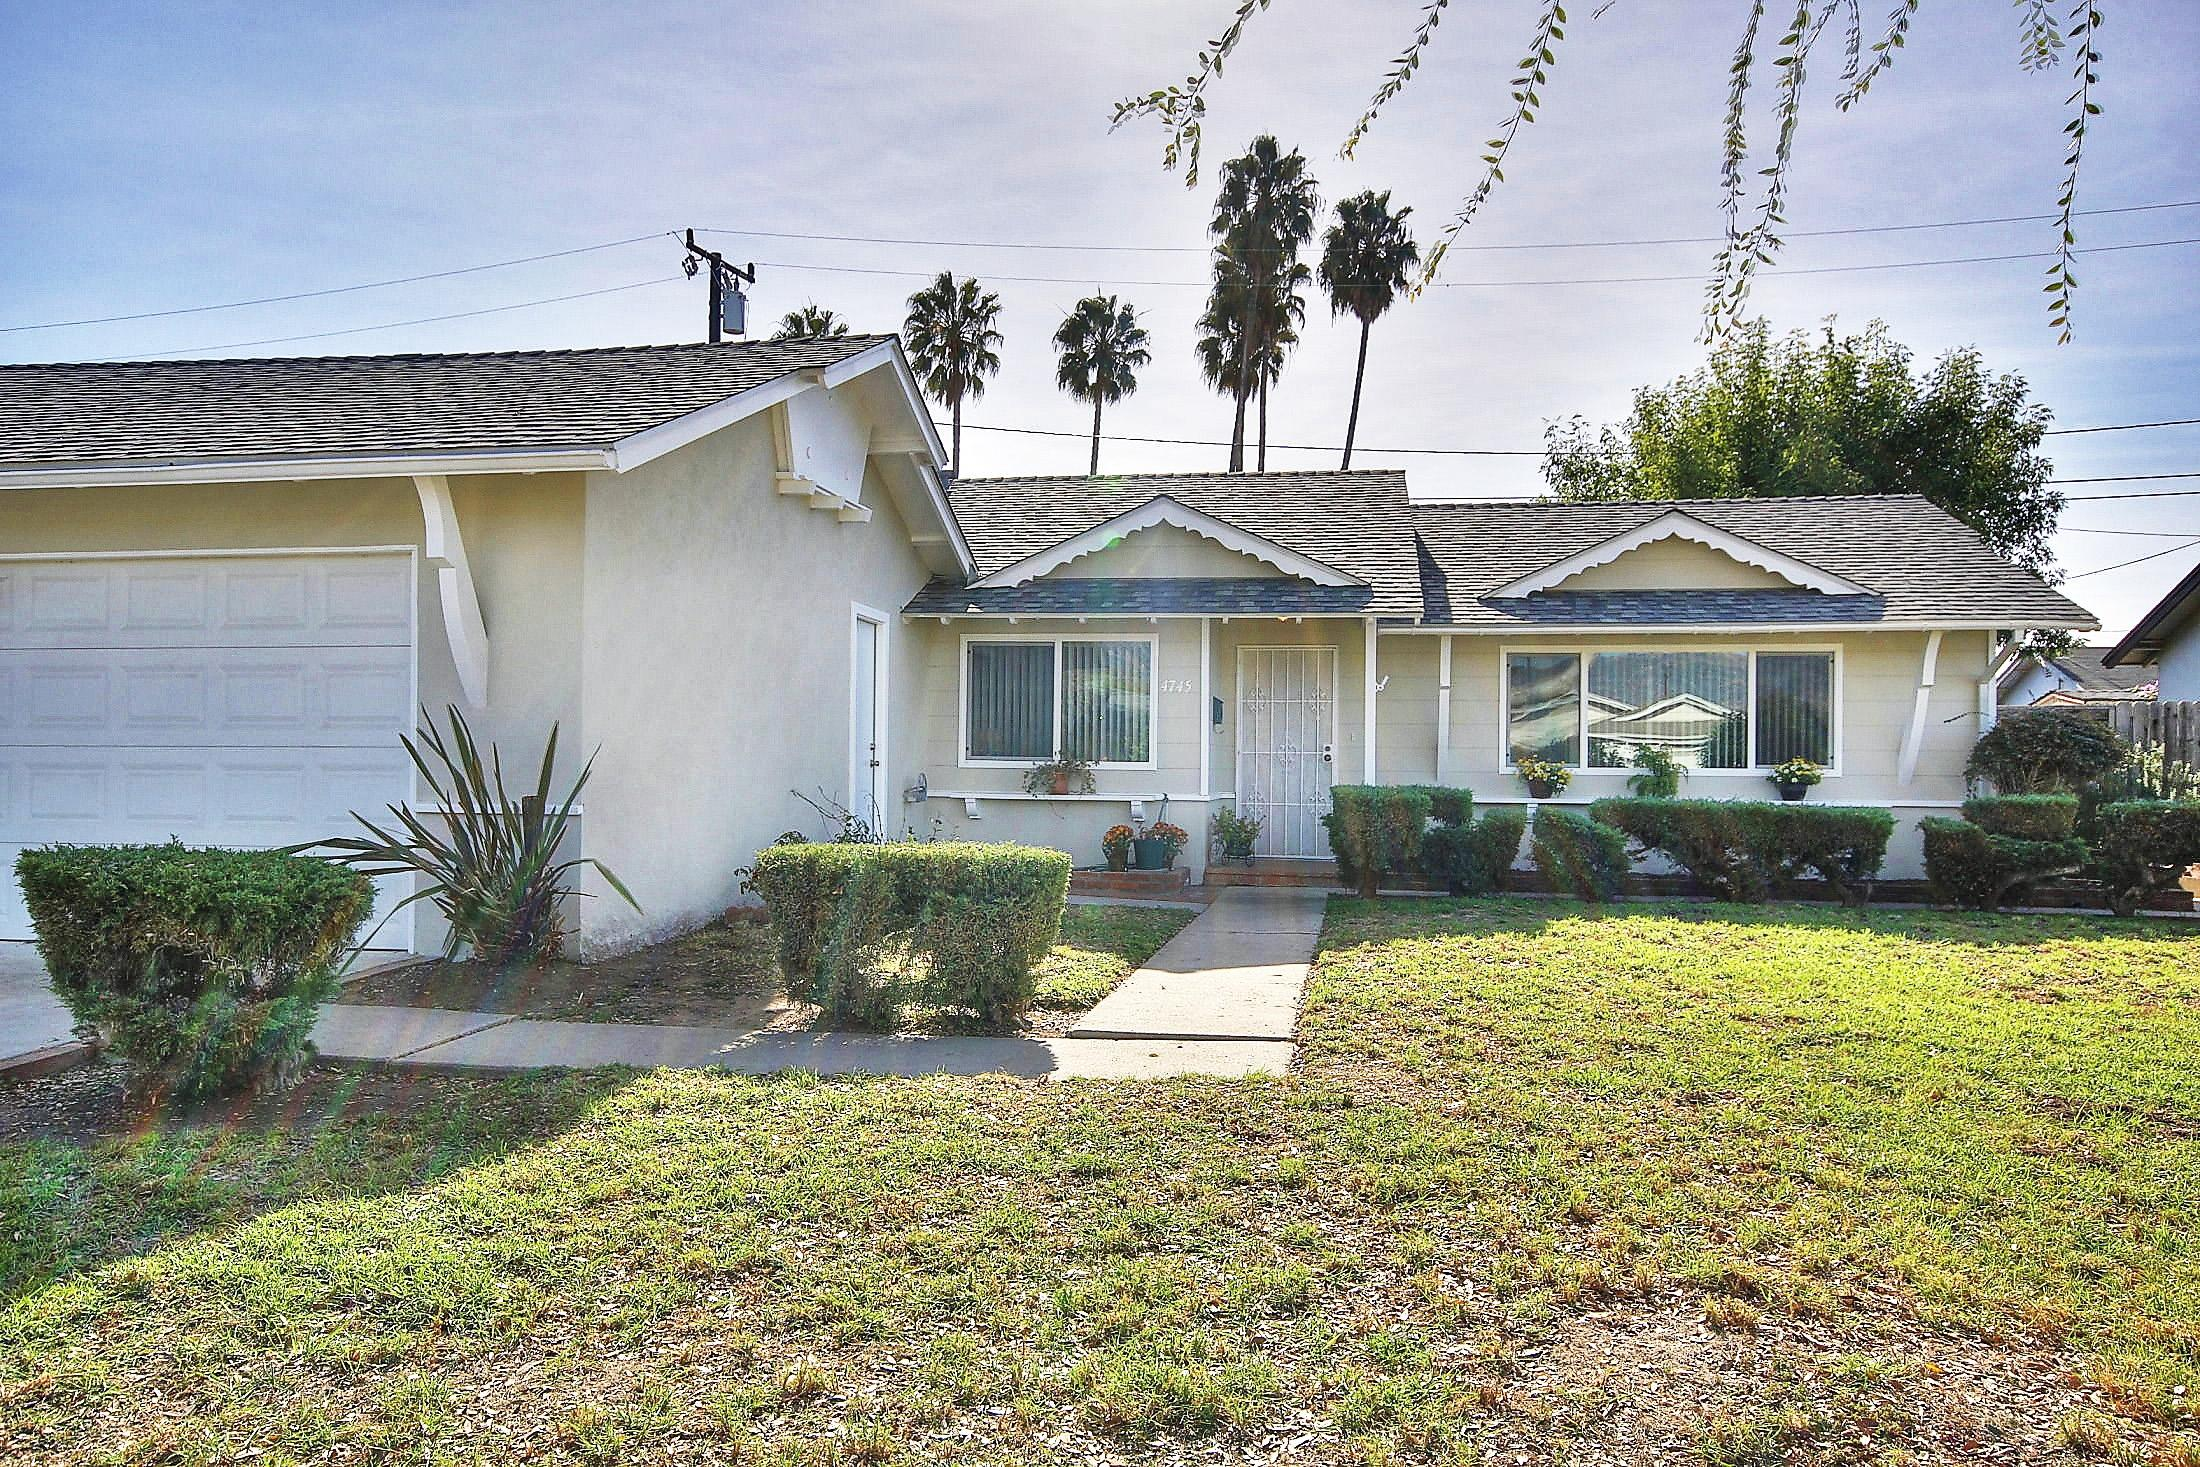 Property photo for 4745 Chandler St Santa Barbara, California 93110 - 14-3560